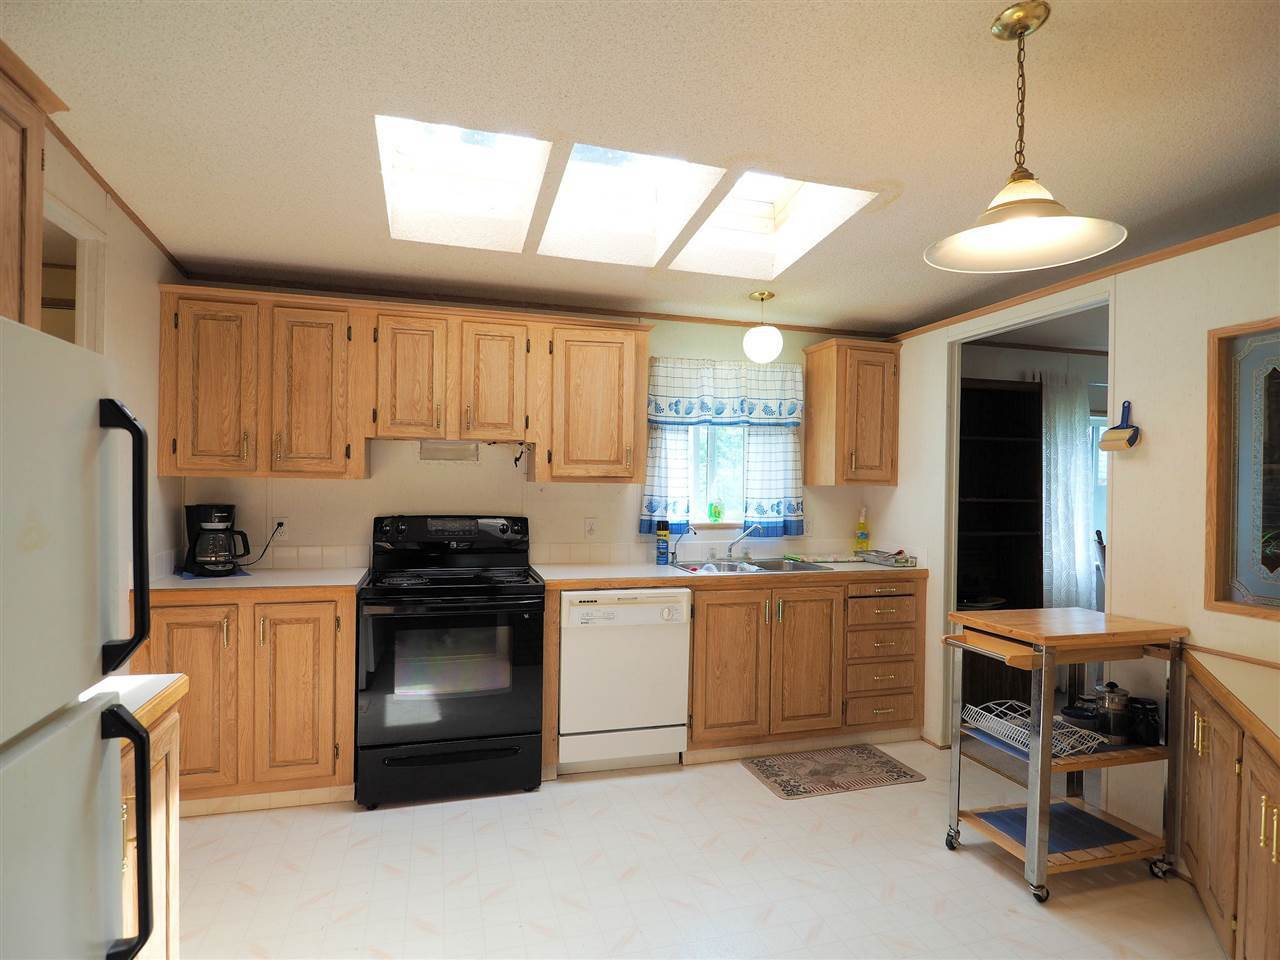 Photo 7: Photos: 4836 GLOINNZUN Drive in 108 Mile Ranch: 108 Ranch Manufactured Home for sale (100 Mile House (Zone 10))  : MLS®# R2435093